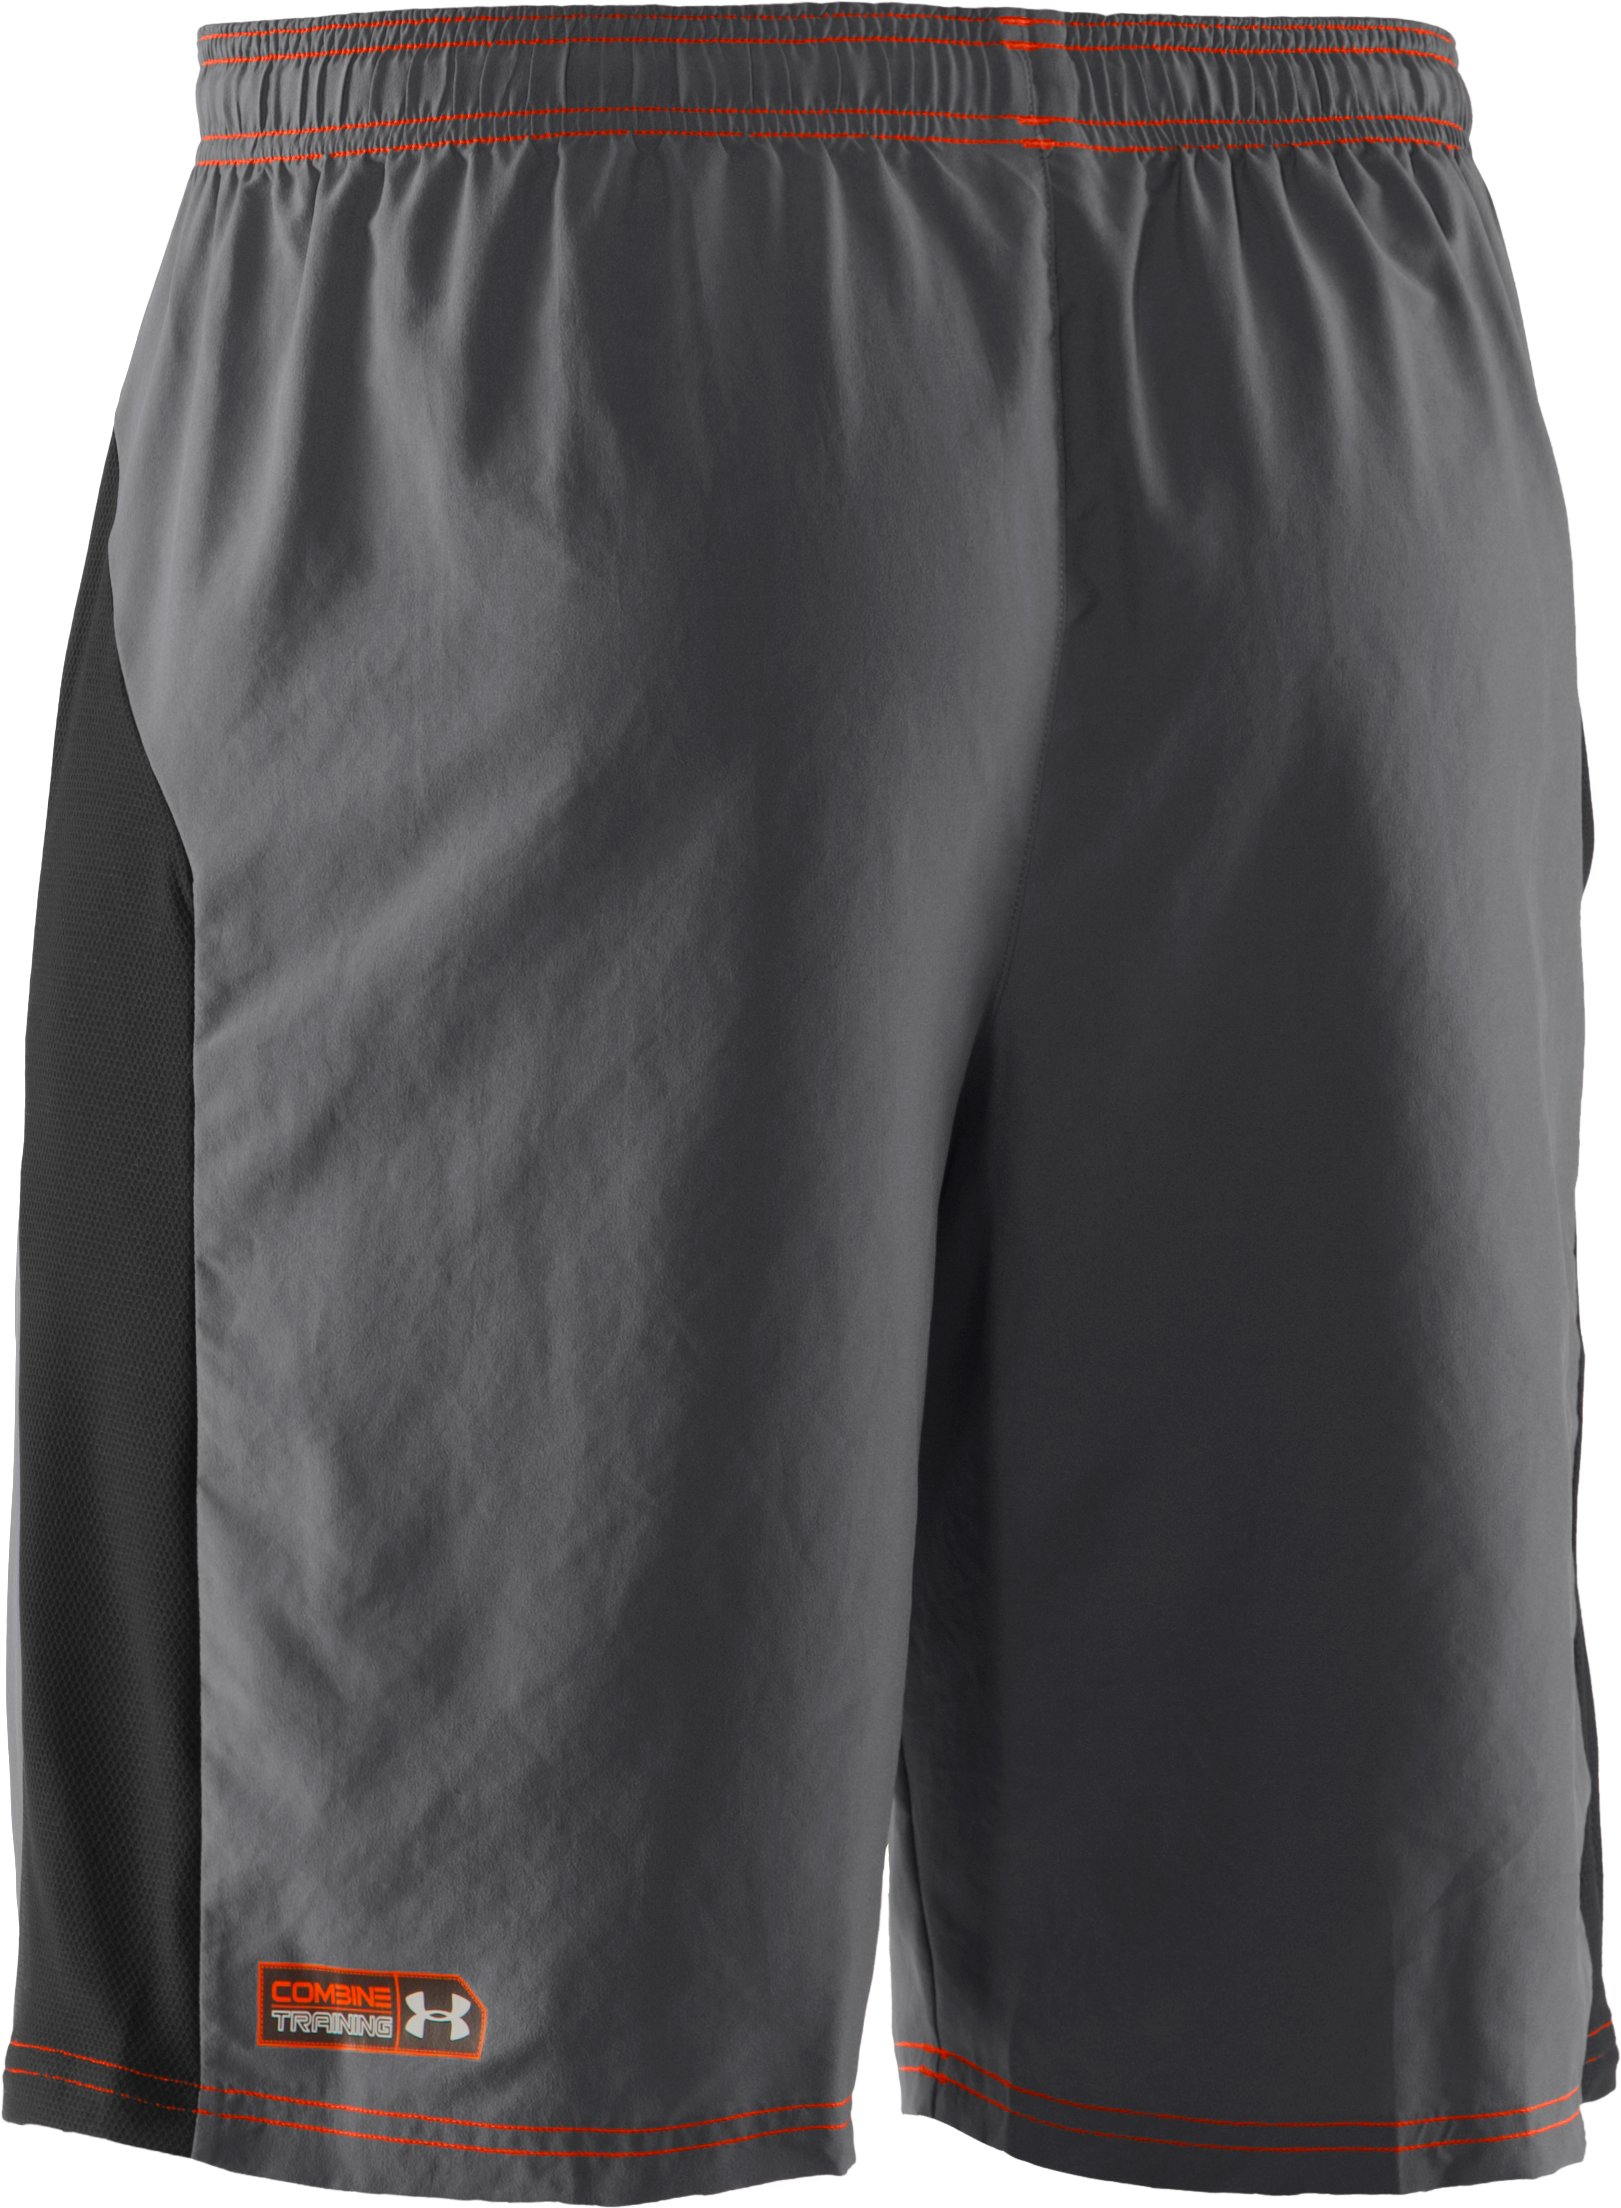 Men's UA Combine™ Training Shorts, Graphite